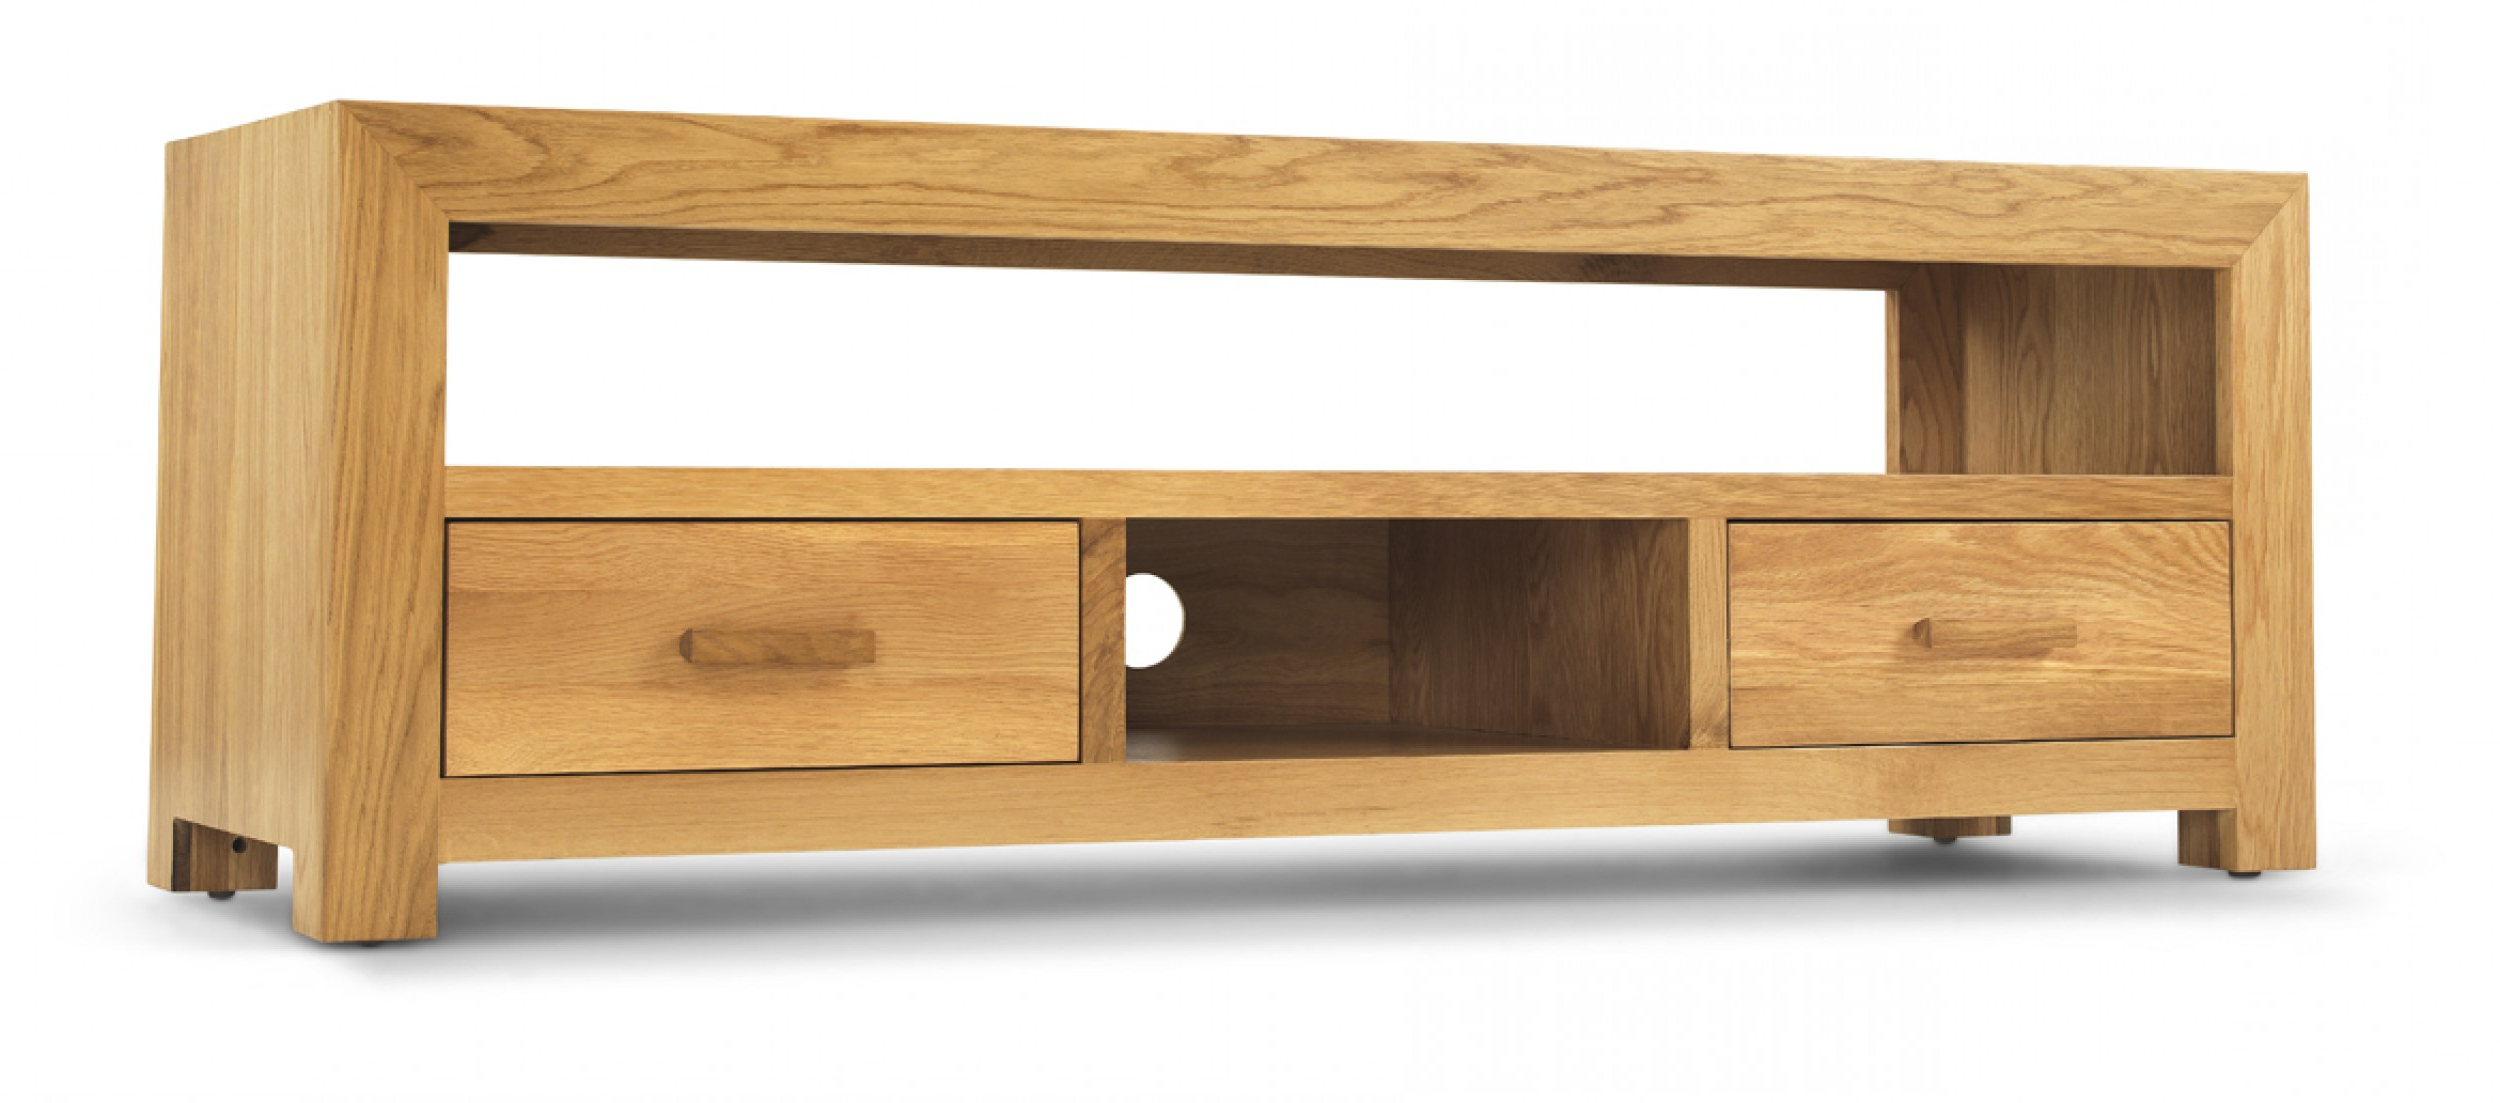 Well Known Low Oak Tv Stands Simple Home Designs 2500×1103 Attachment Within Low Oak Tv Stands (View 4 of 20)